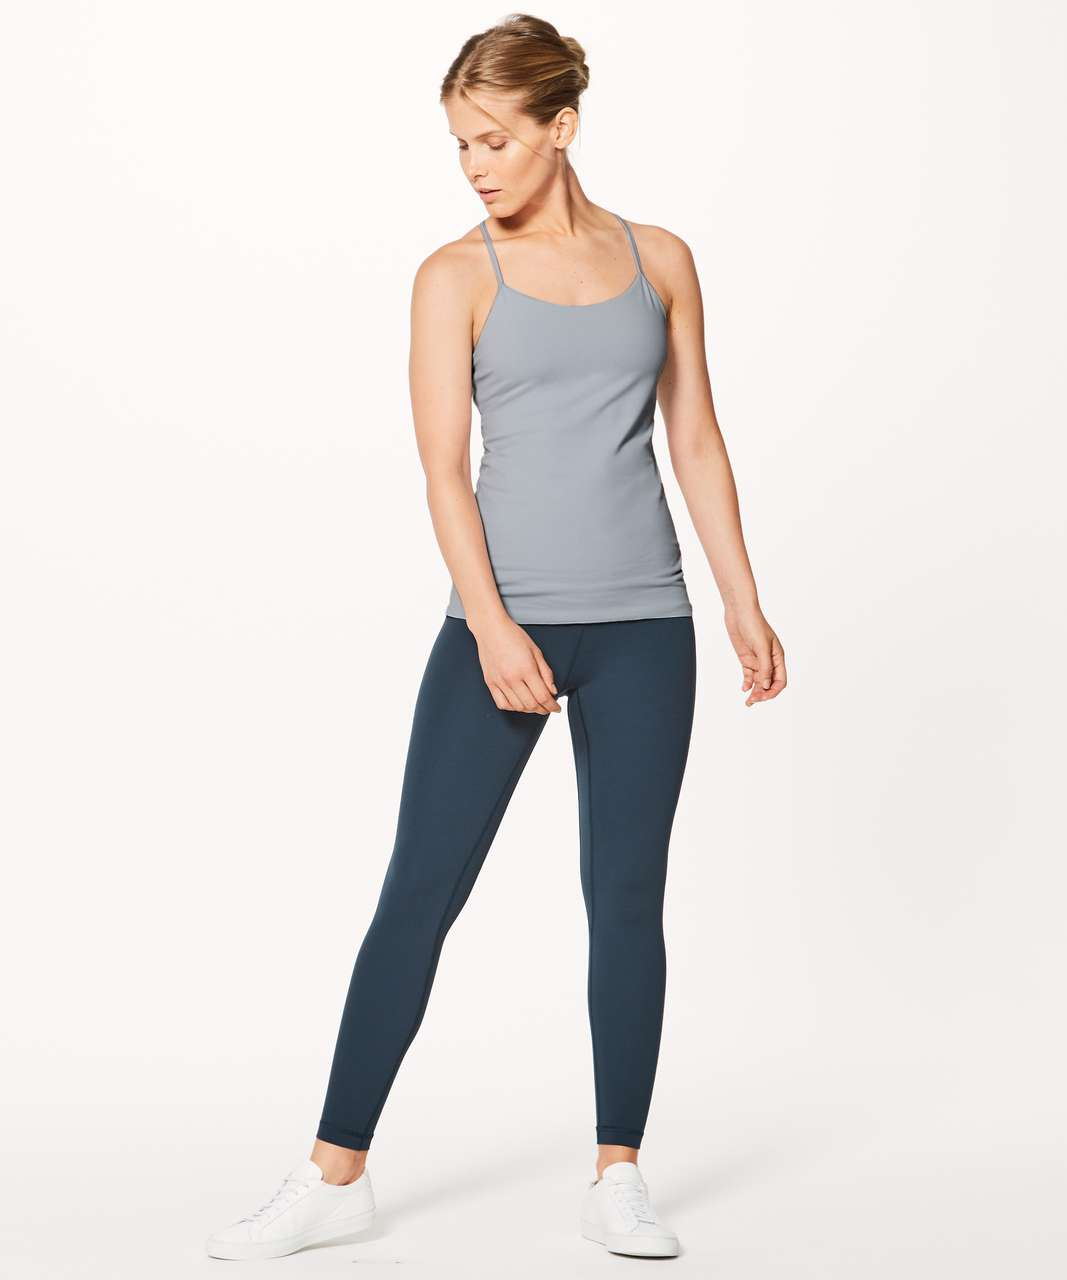 Lululemon Power Pose Tank - Hail